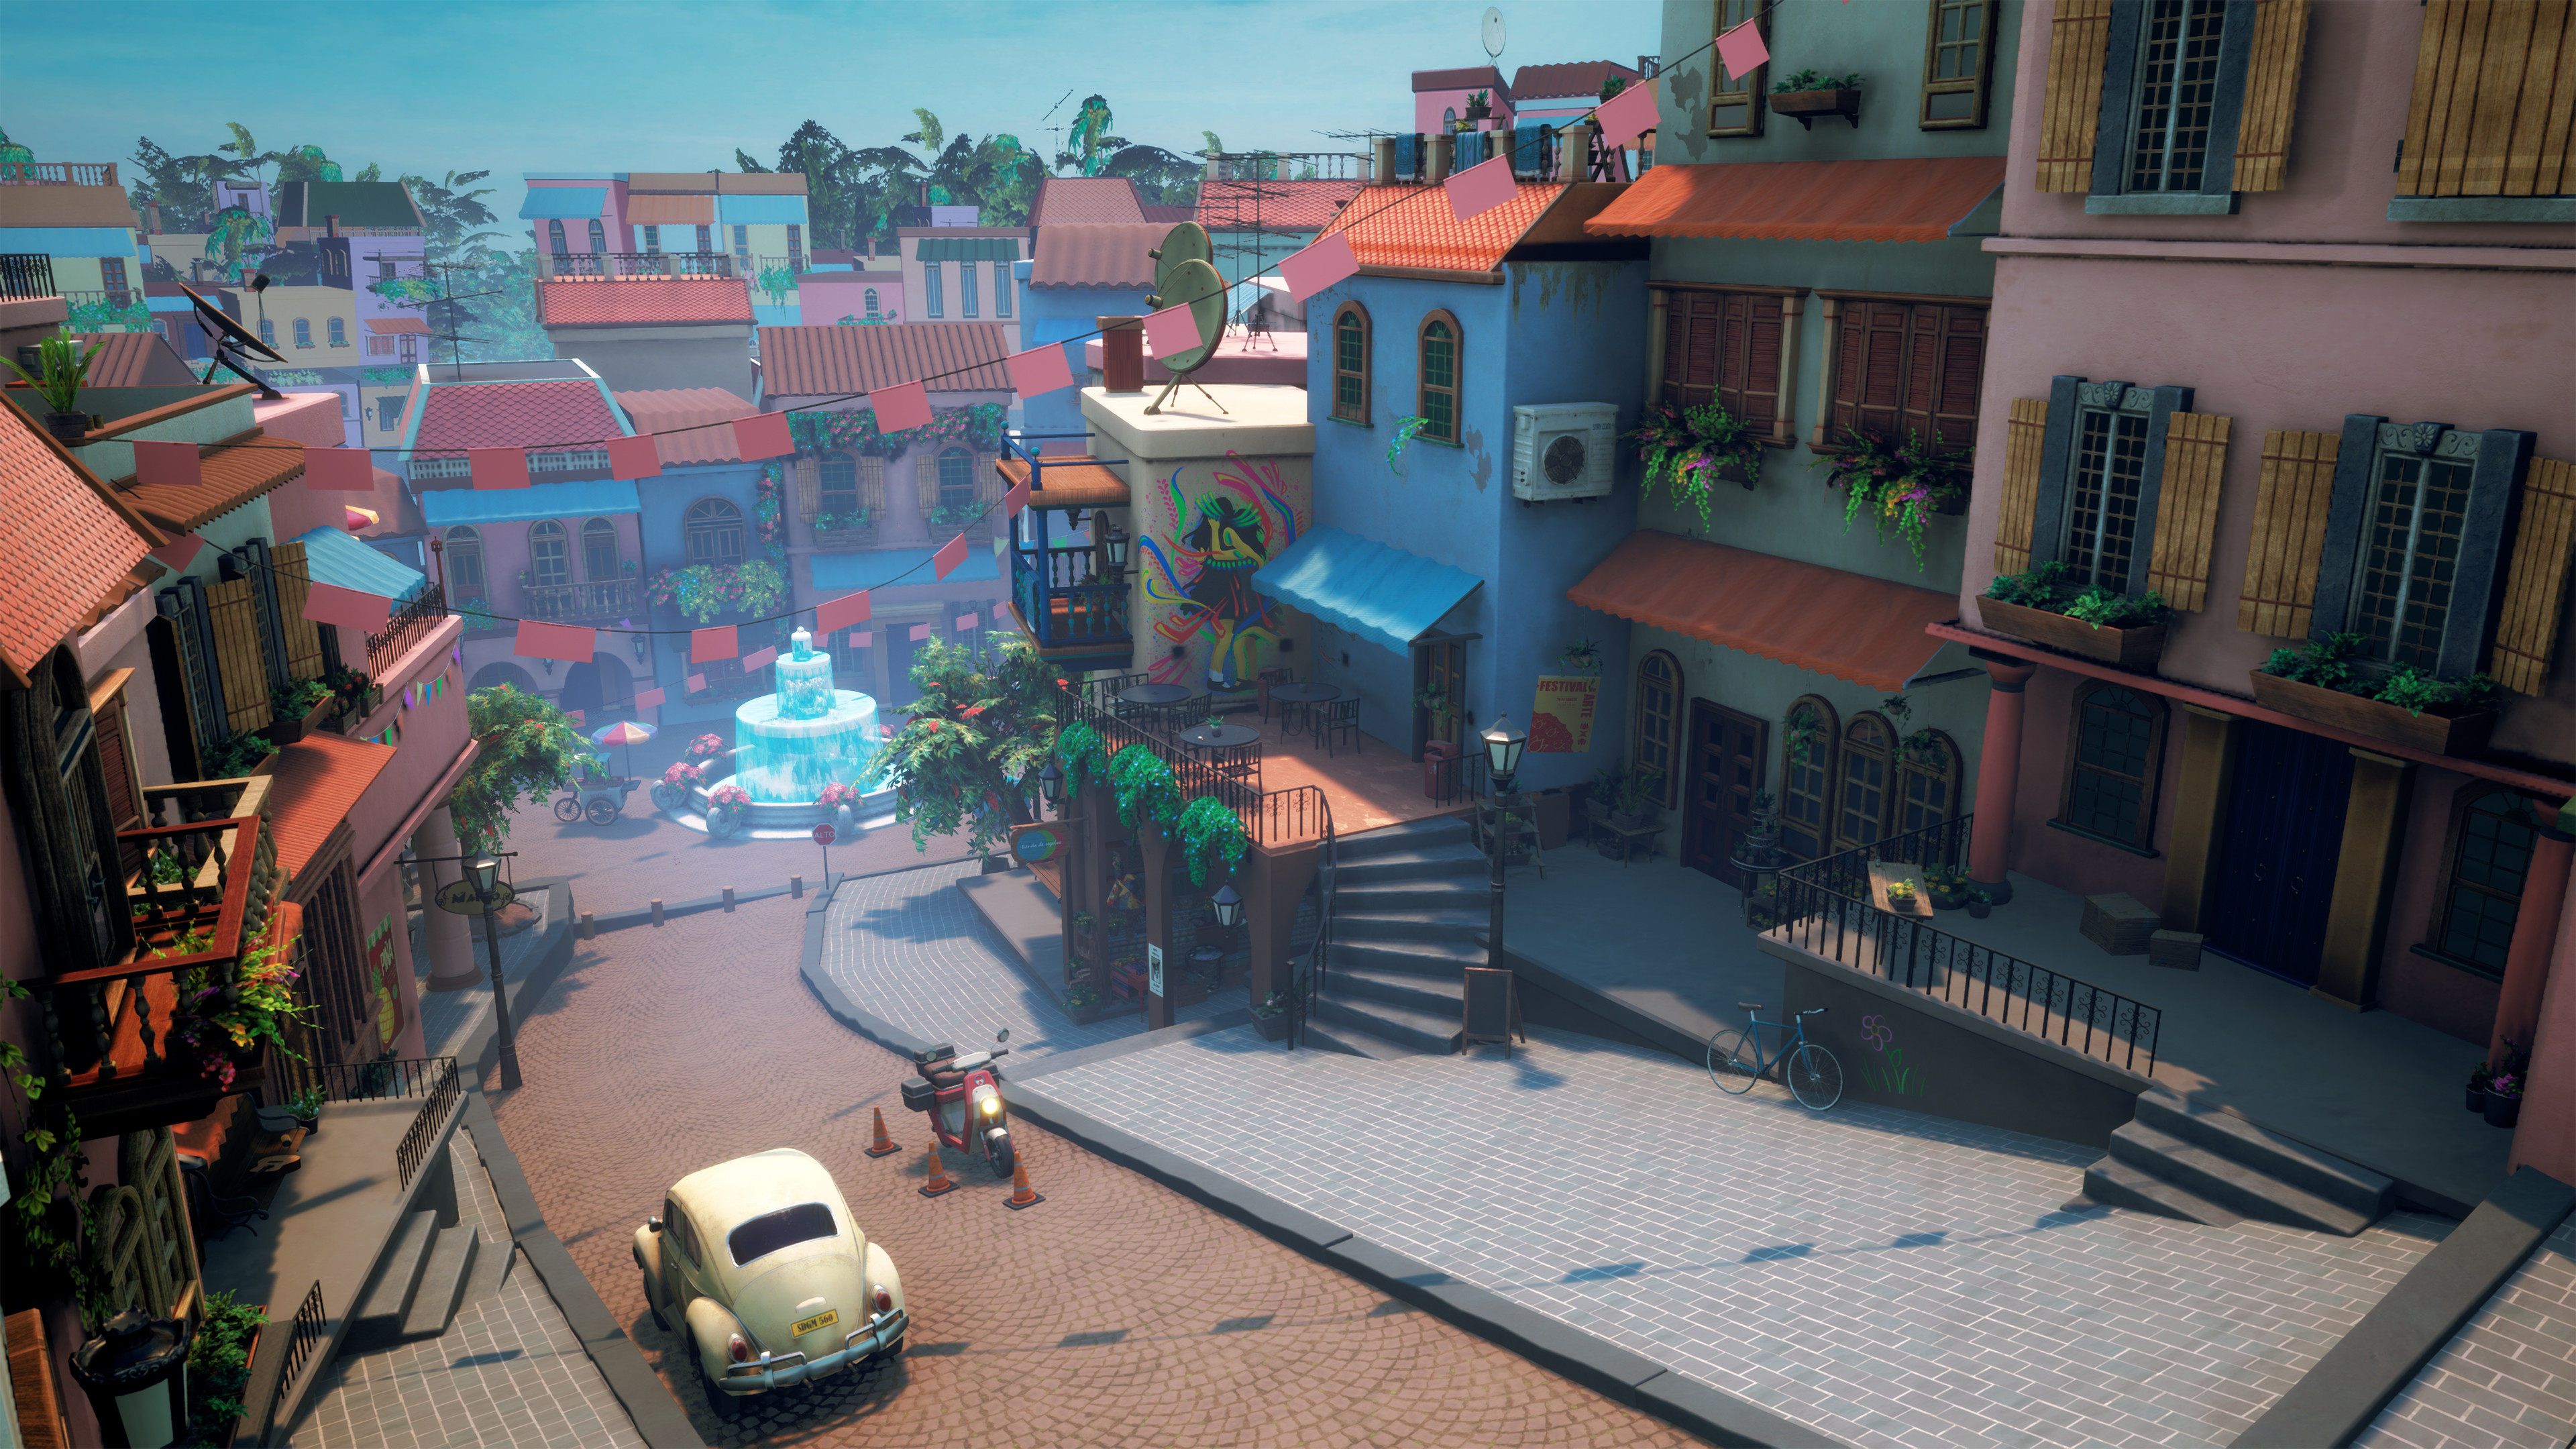 Towards the end of our ~20 week development cycle I worked on further developing our lighting in the Urban environment.